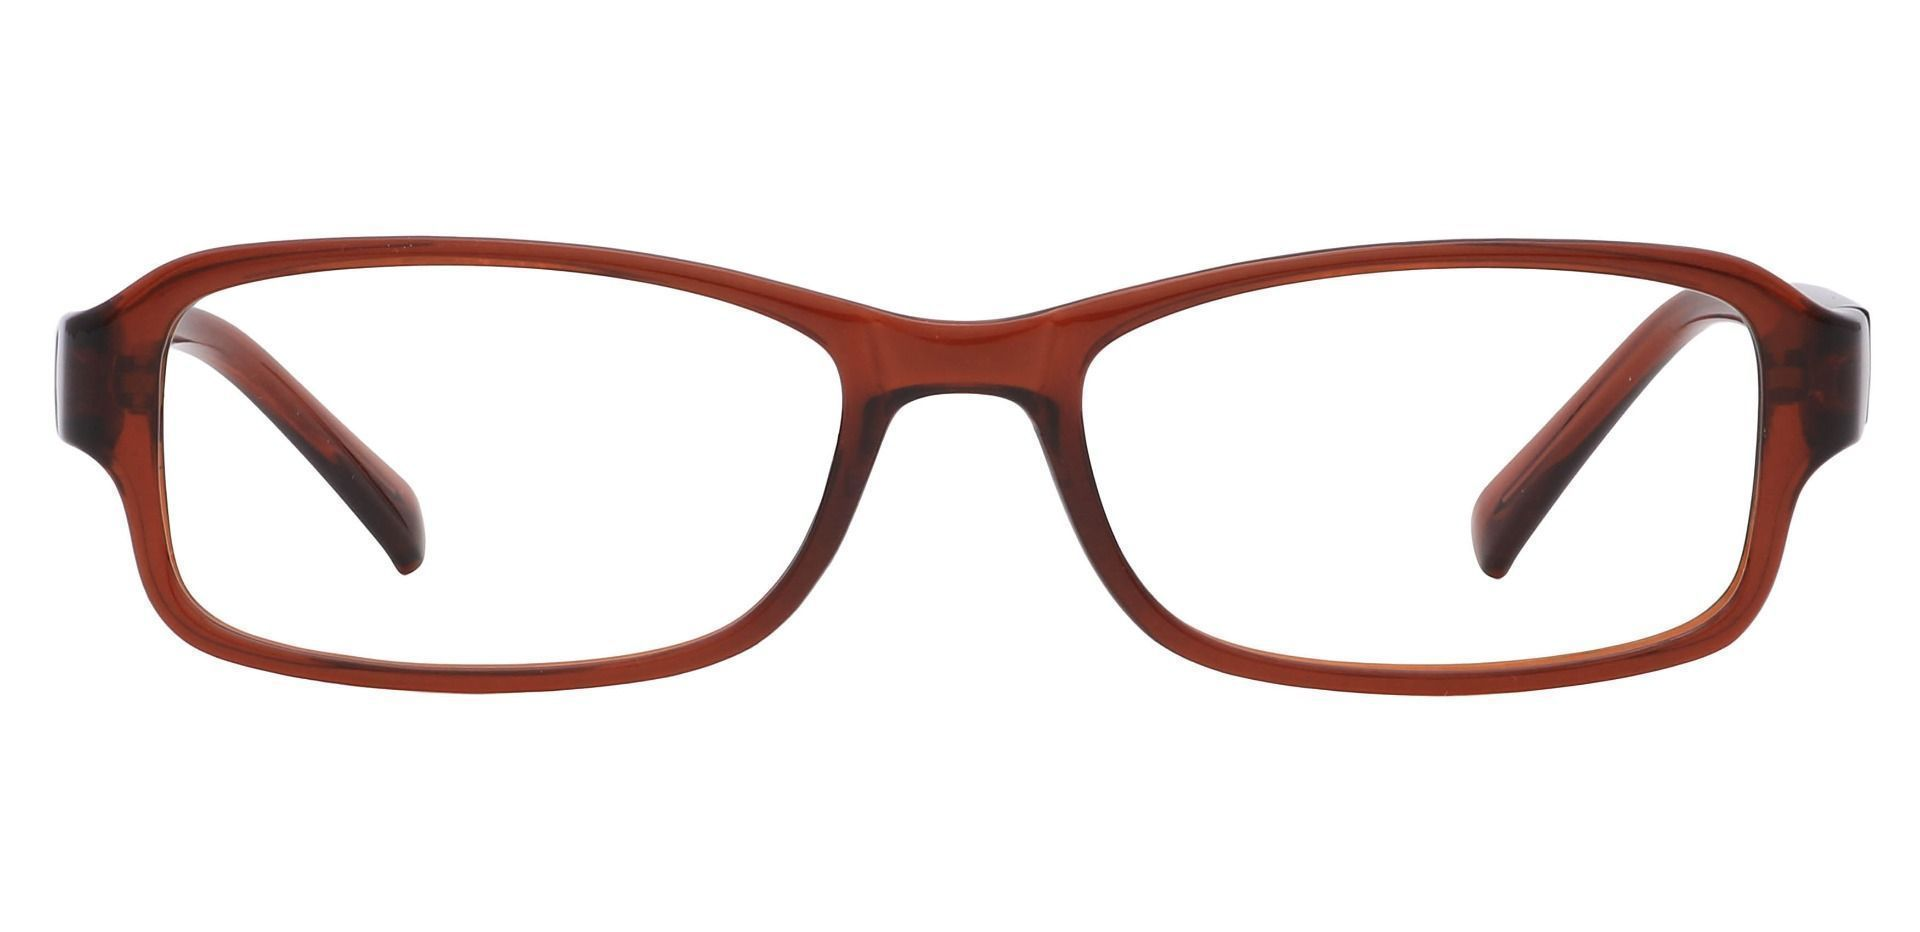 Rowan Rectangle Non-Rx Glasses - Root Beer Crystal